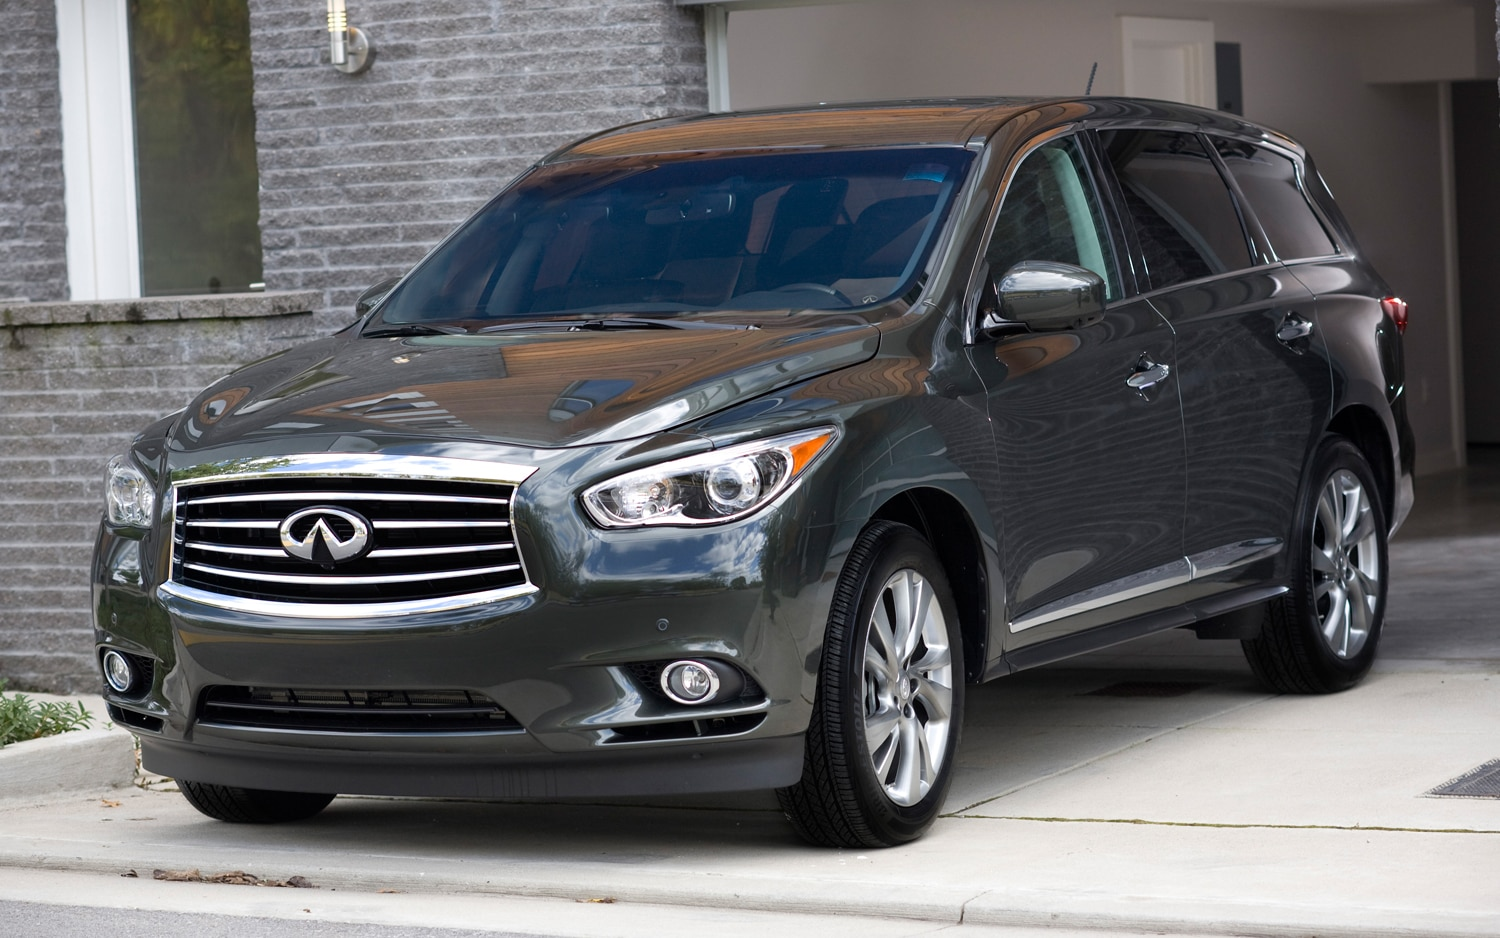 2013 Infiniti JX35 Front Three Quarter 031